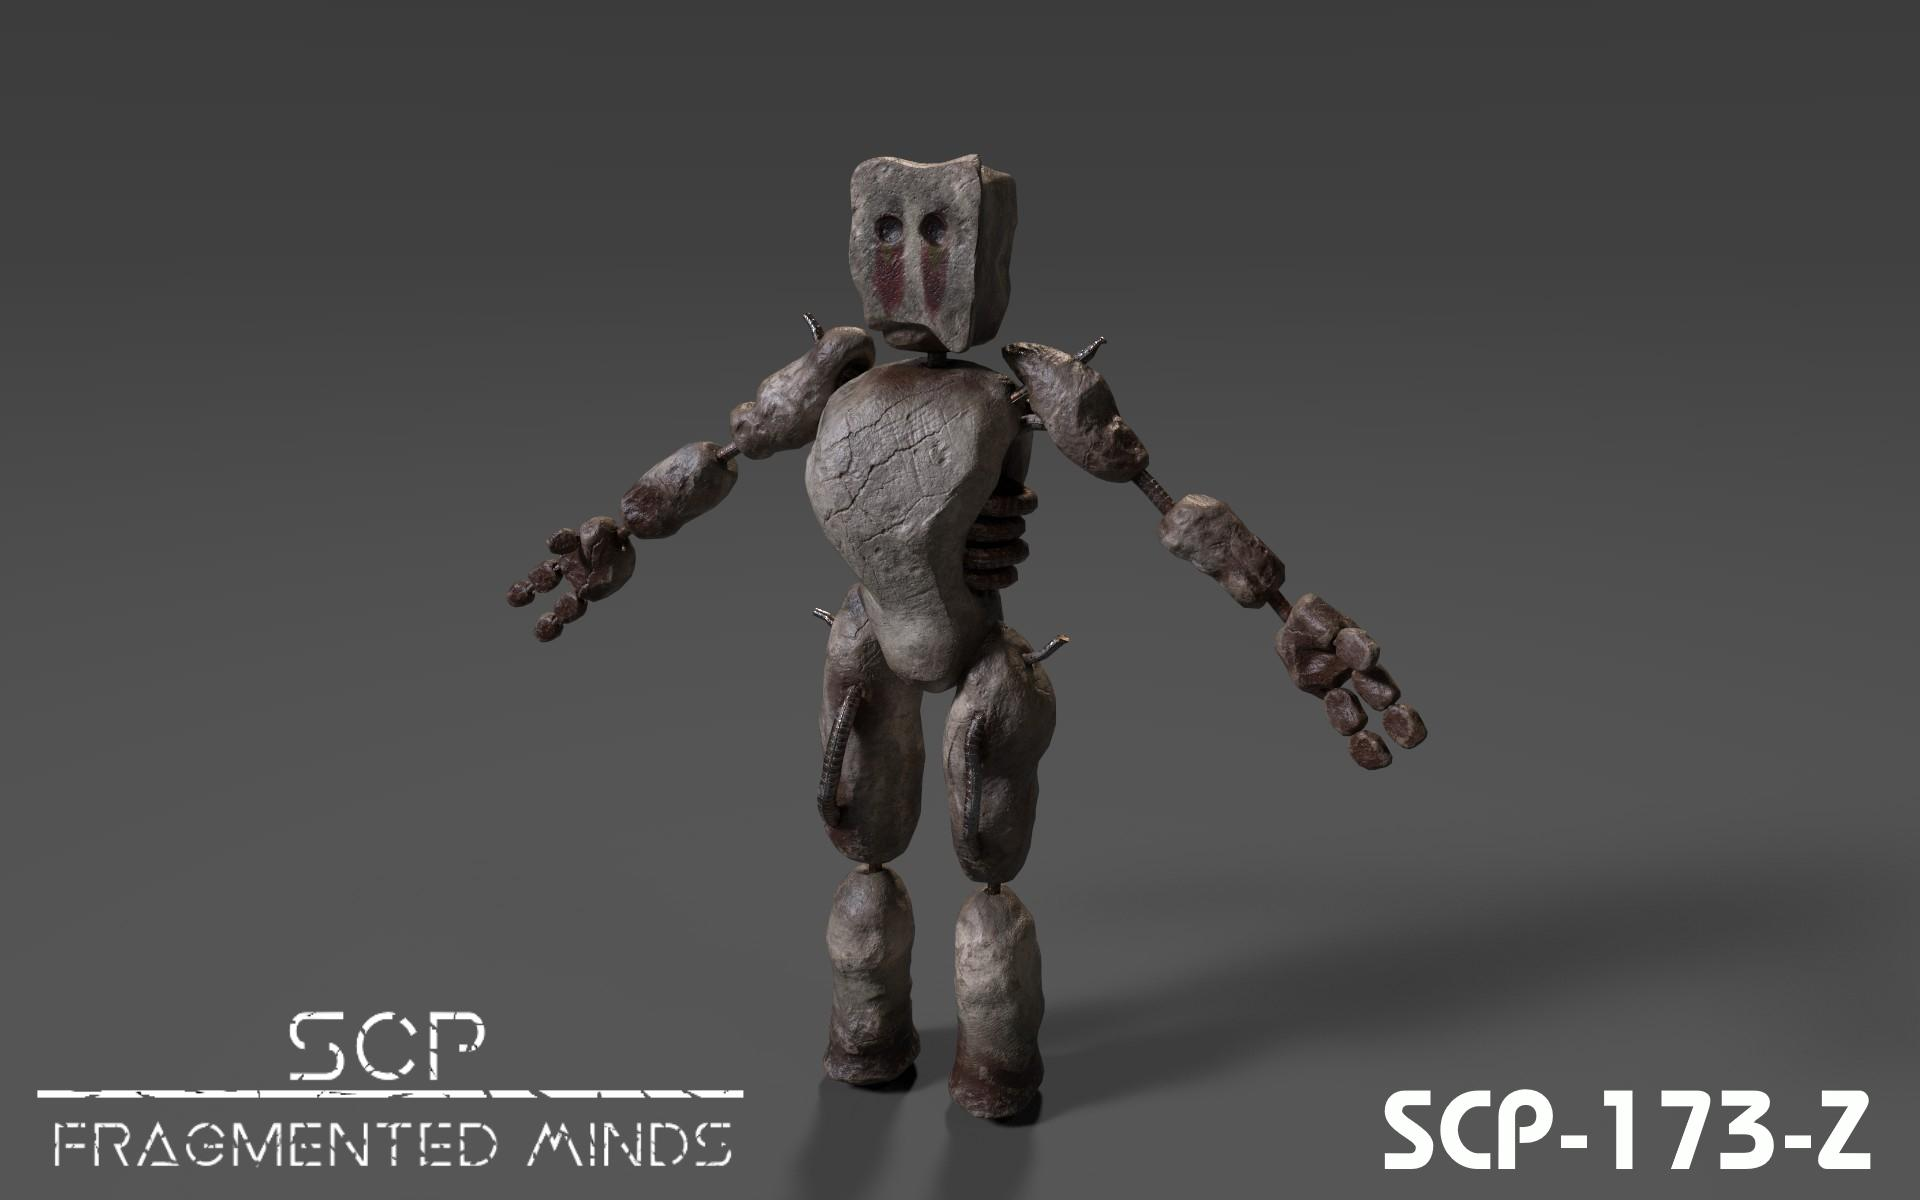 Roblox Scp 173 Scp 106 Scp Containment Breach Wallpaper Posted By Ryan Thompson